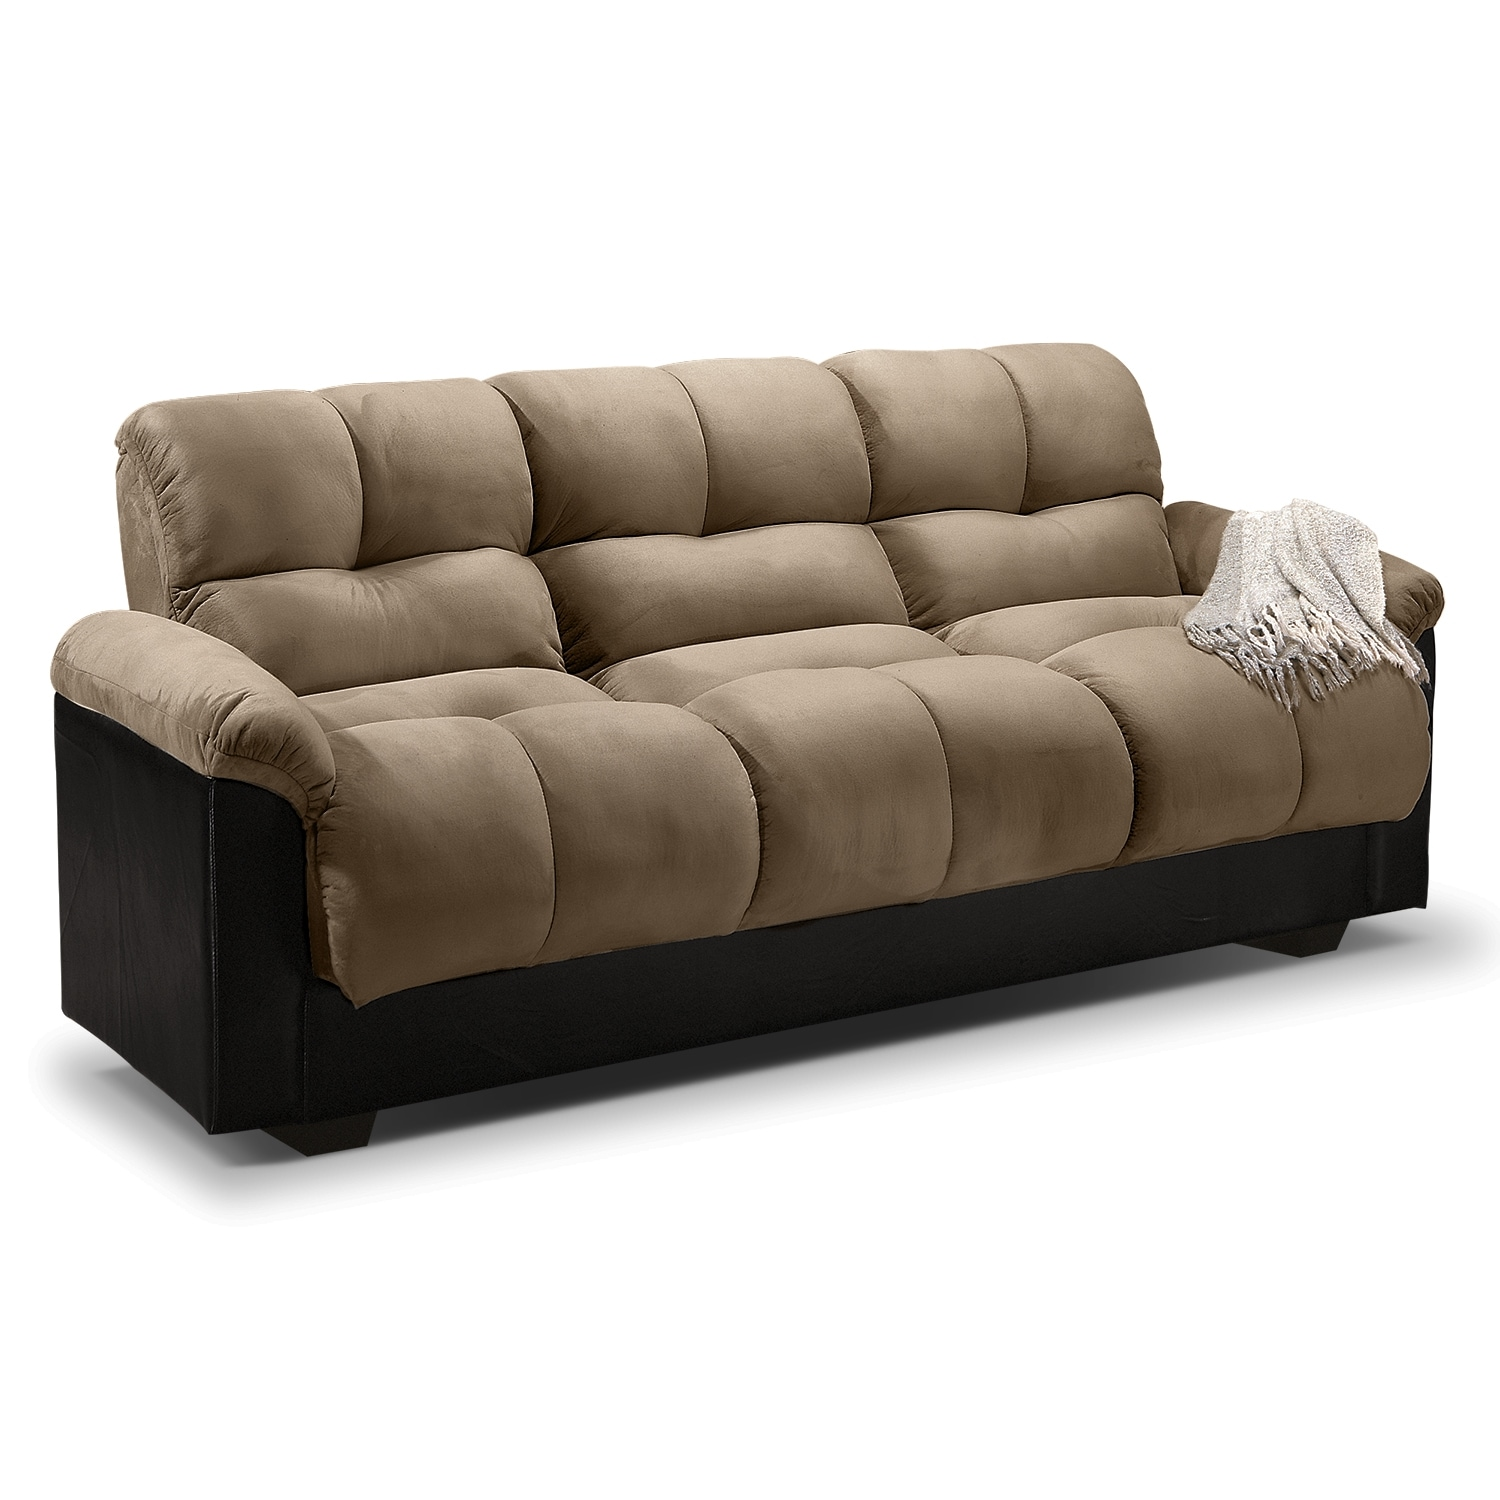 Ara Futon Sofa Bed With Storage